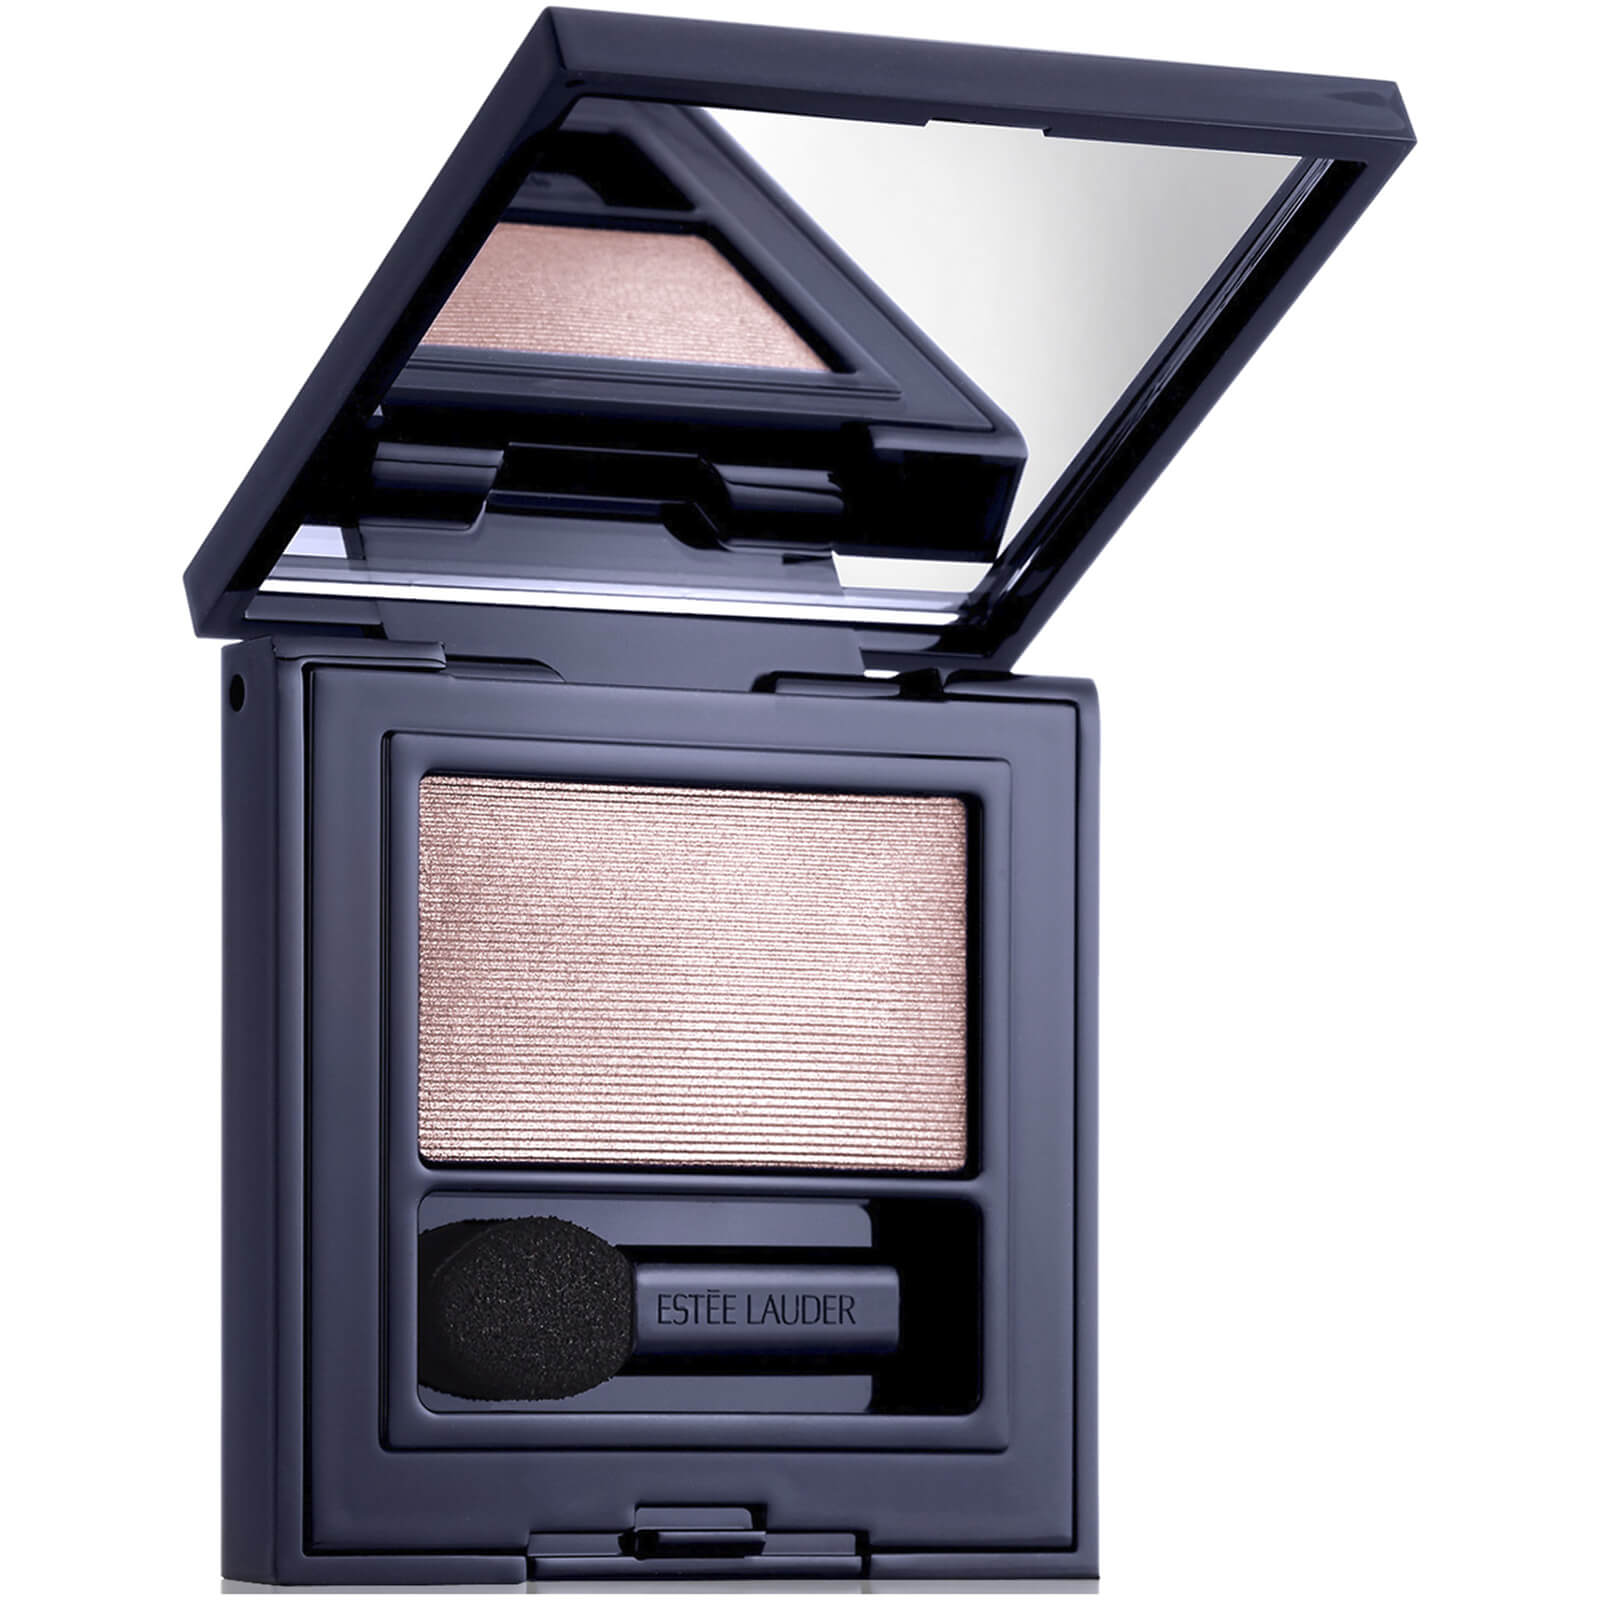 Estée Lauder Pure Colour Envy Defining Eye Shadow 1.8g (Various Shades) - Brilliant - Cheeky Pink